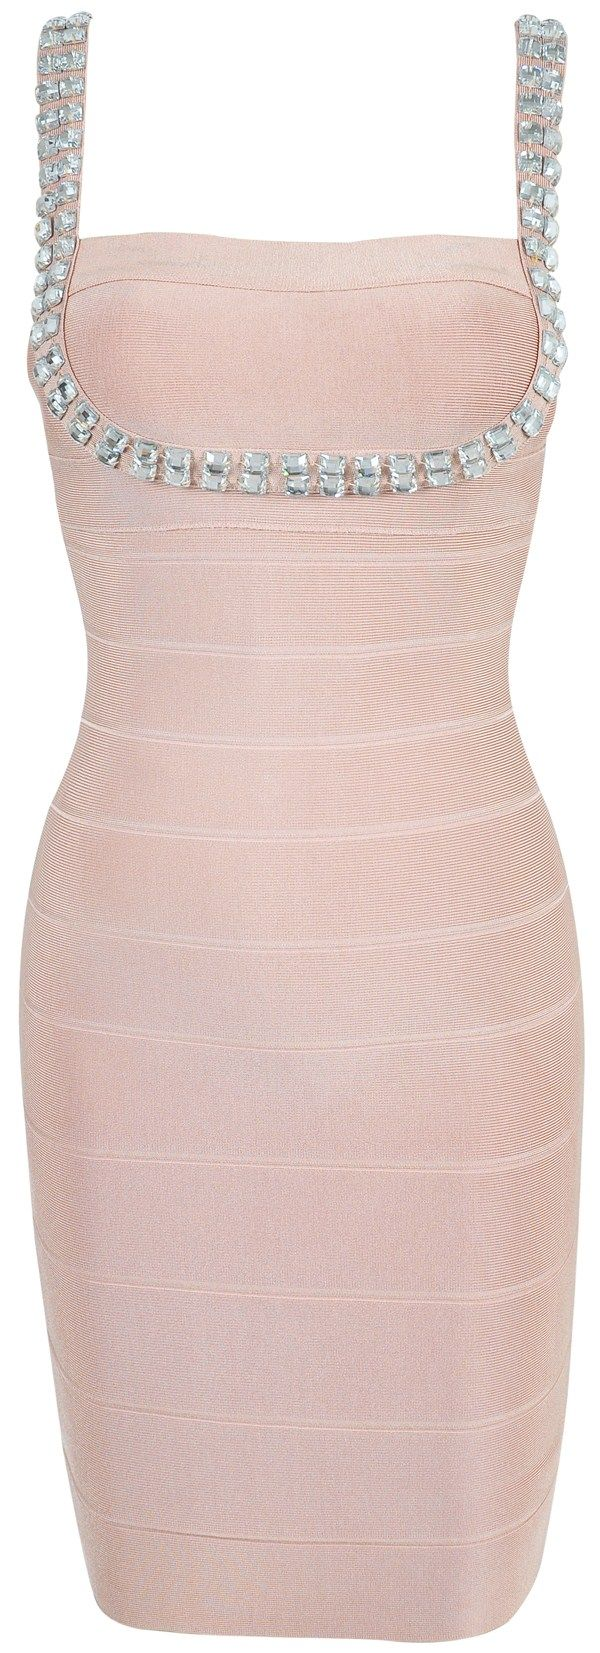 Clothing : Bandage Dresses : 'Kendall' Nude Pink & Crystal Bandage Dress: Bandage Dresses, Women Fashion, Backless Prom Dresses, Crystals Bandage, Bridesmaid Dresses, Pink Crystals, Blushes, Kendall Nudes, Nudes Pink